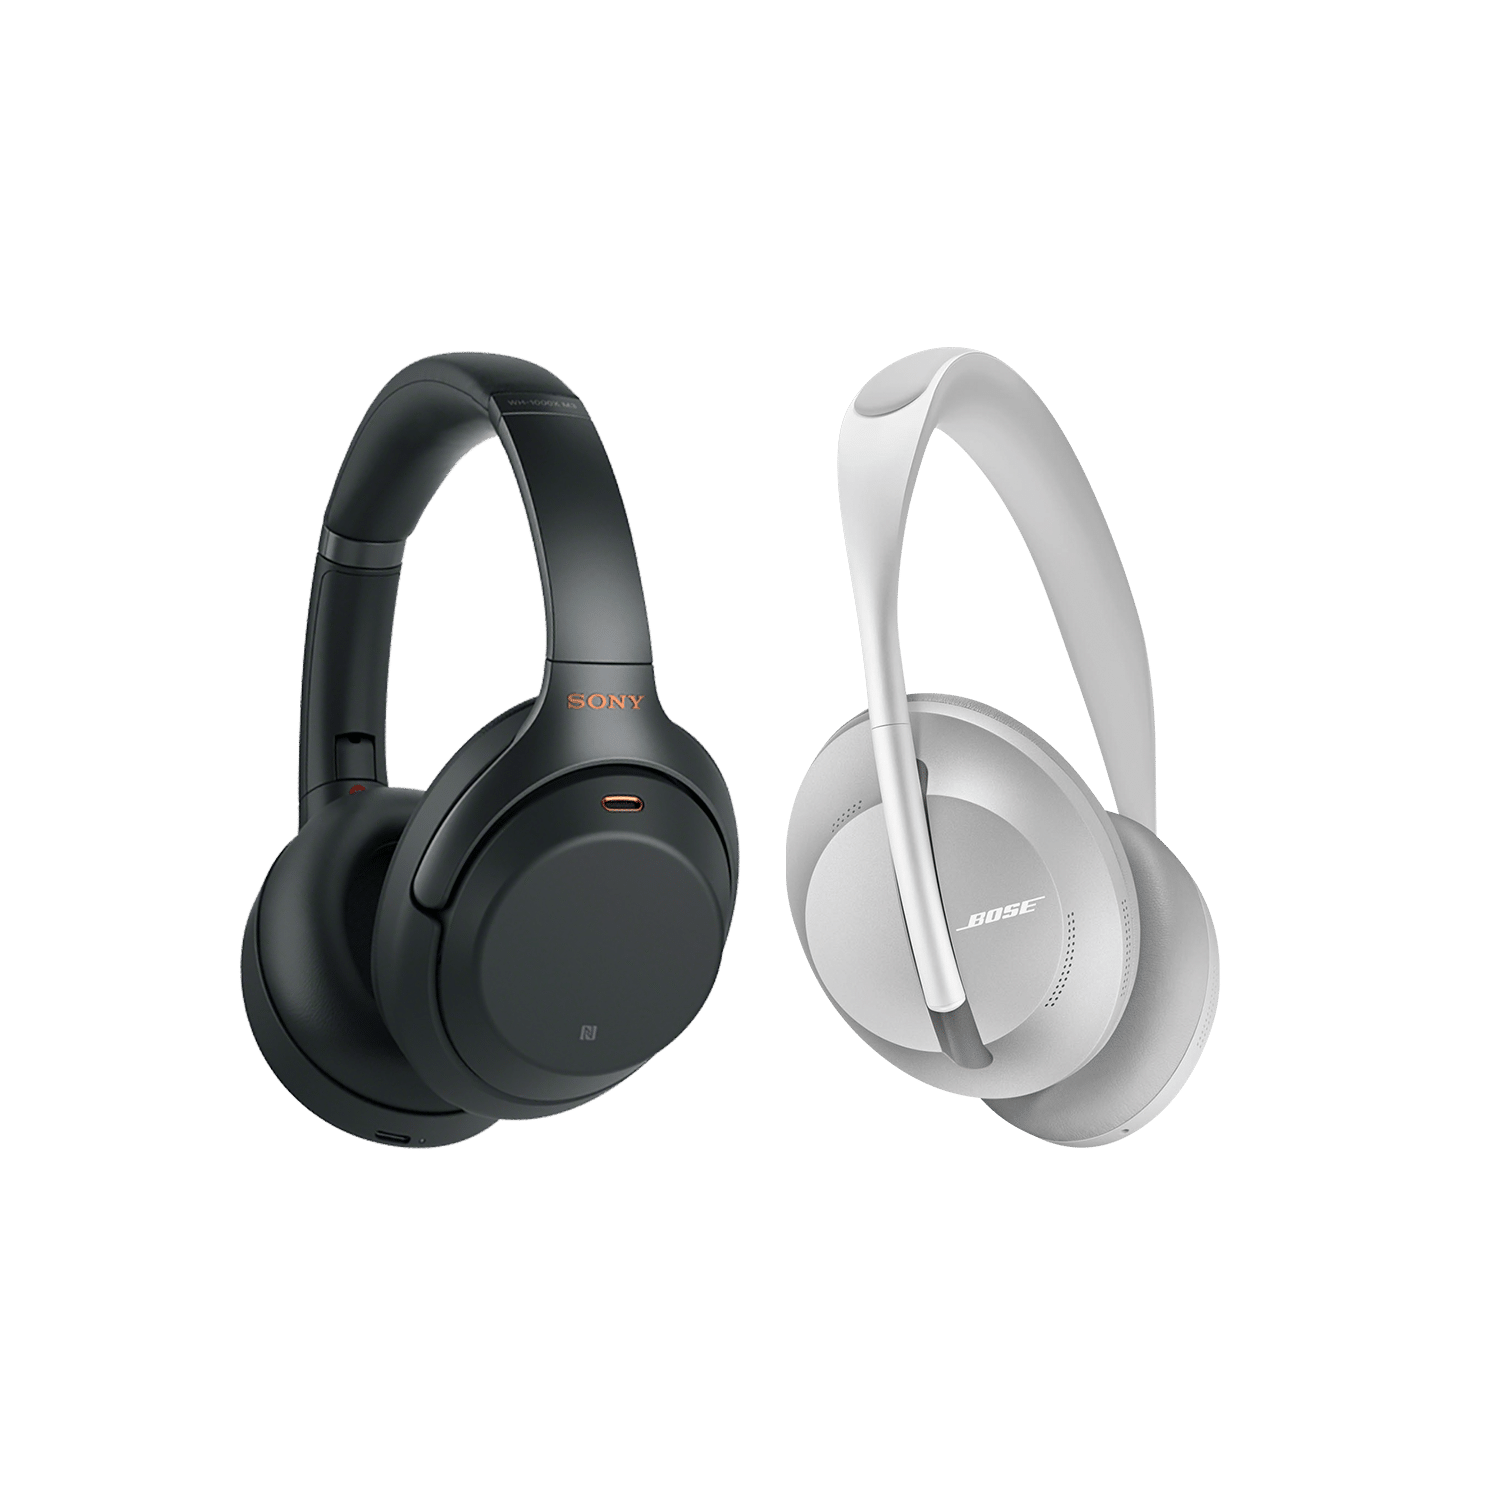 Sony WH-1000X M3 vs Bose Noise Cancelling Headphones 700